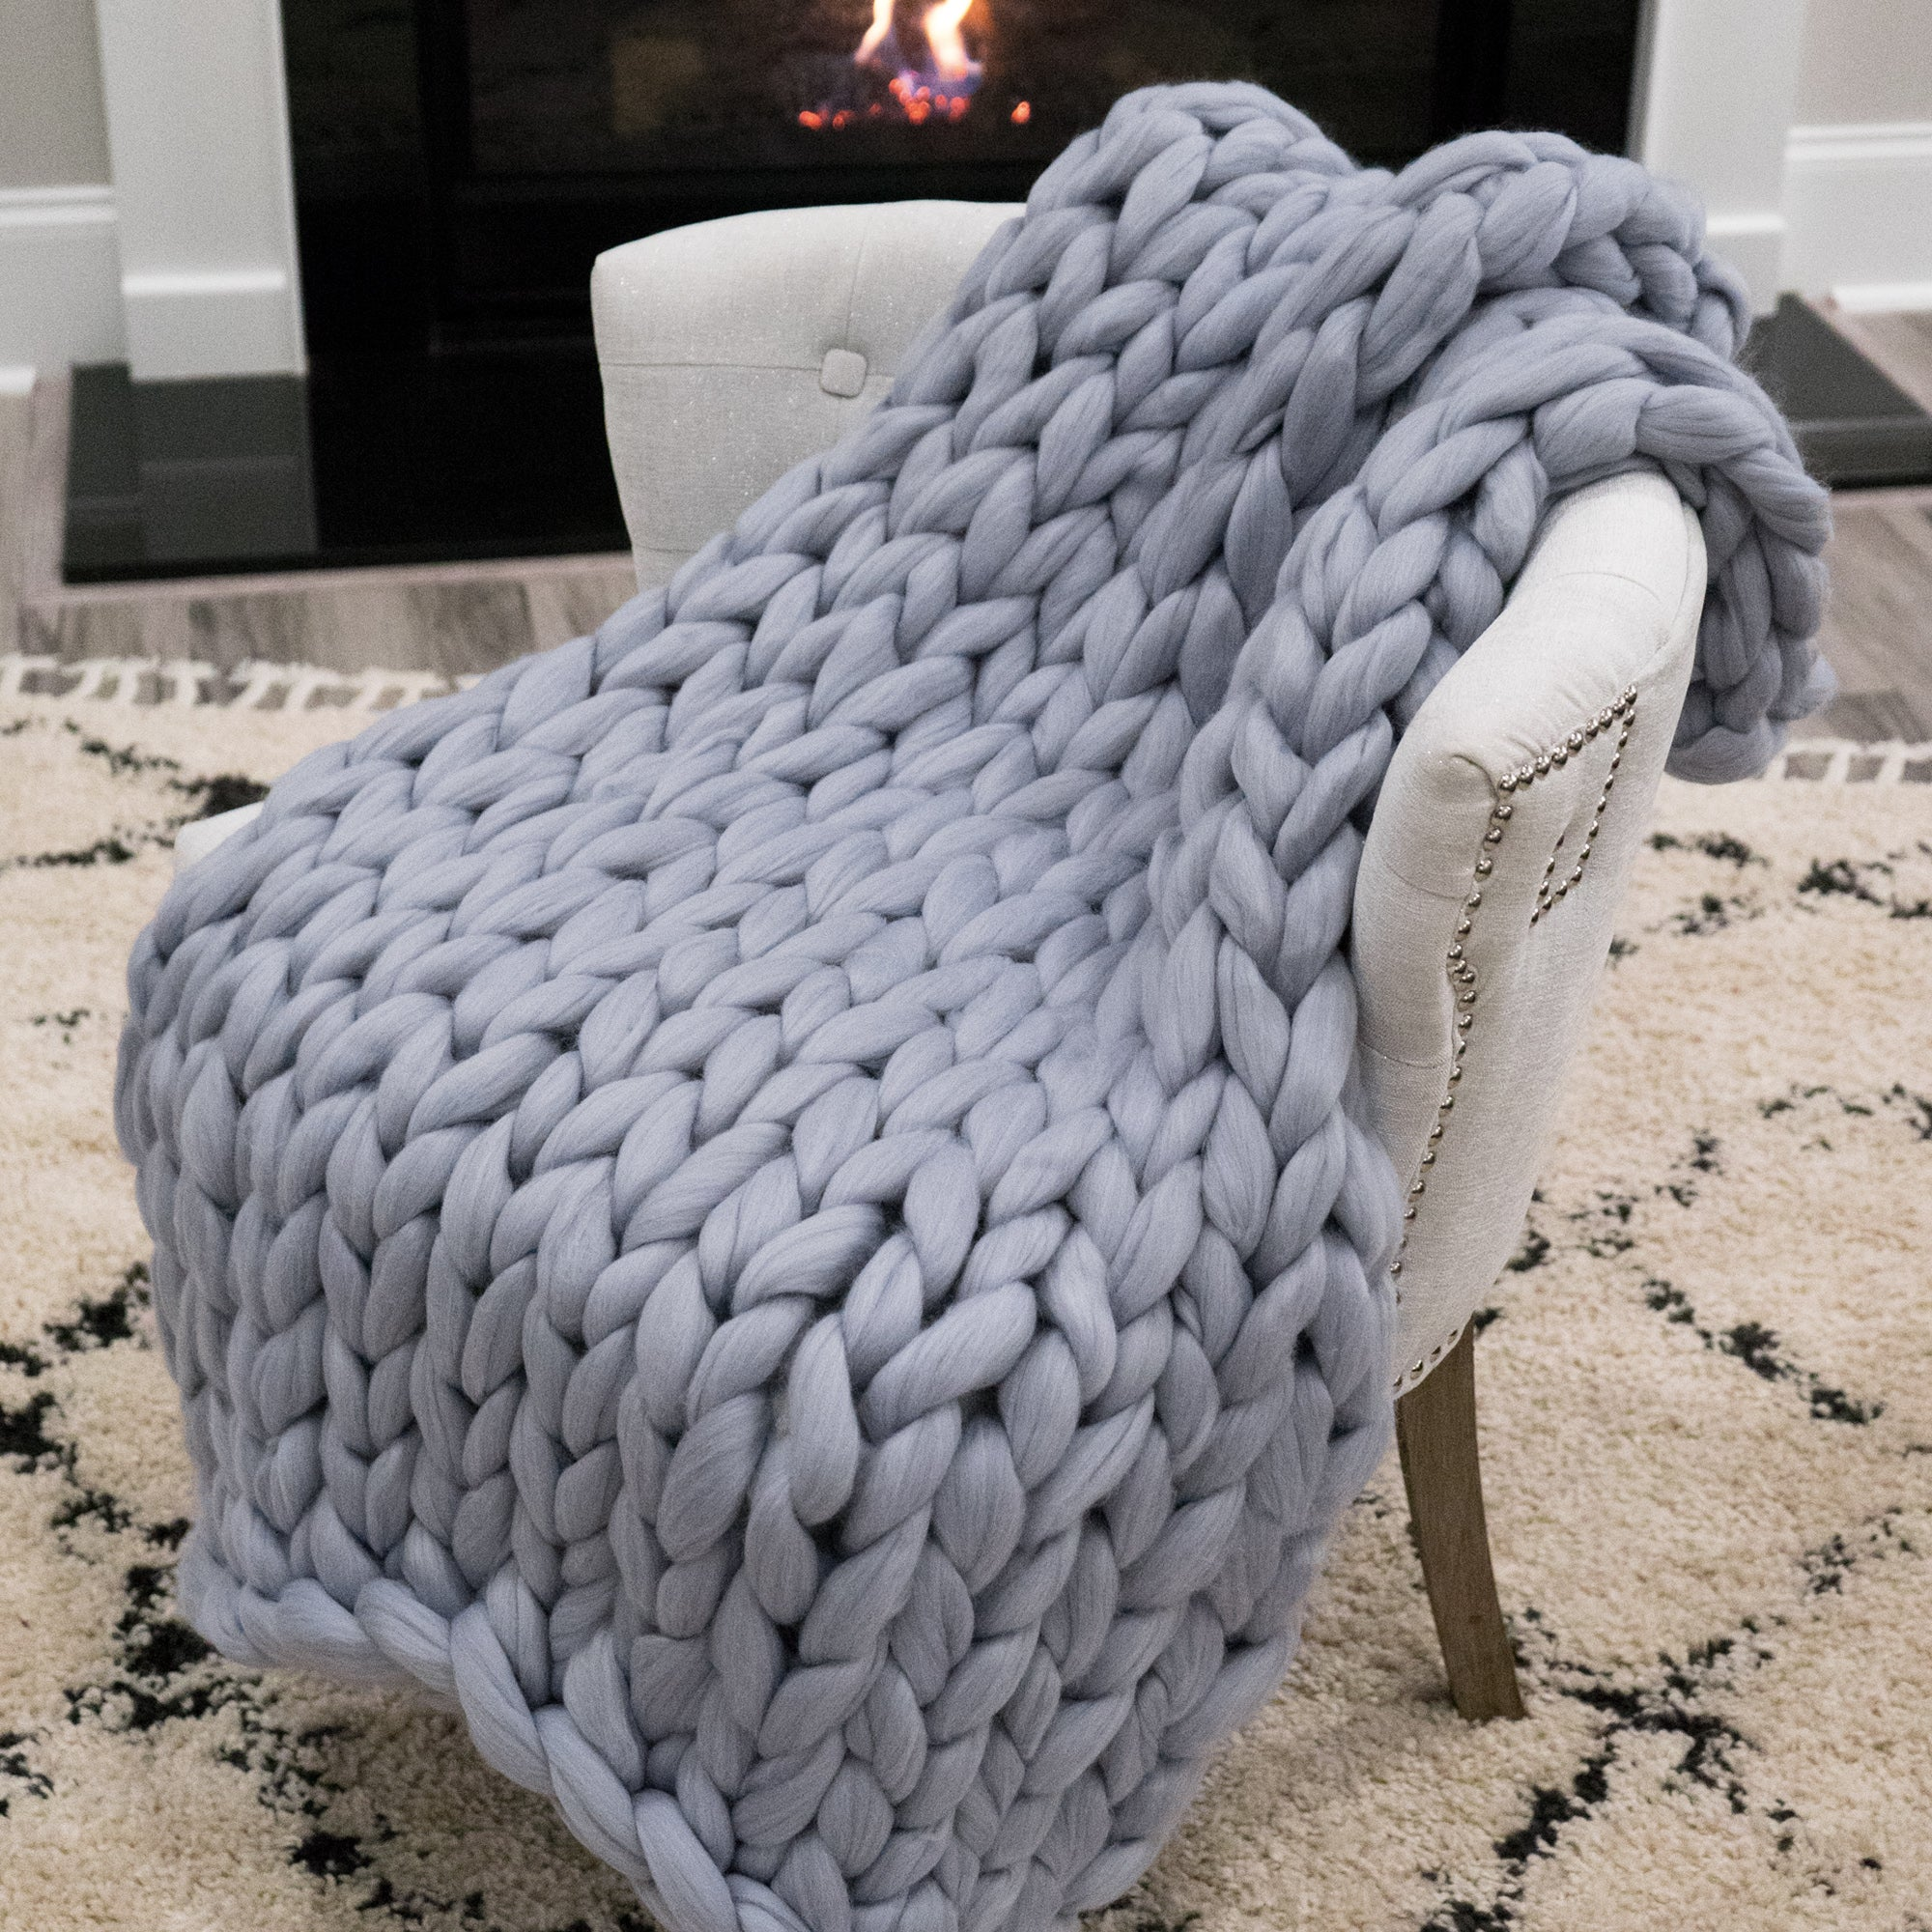 Chunky Knit Throw - Stormy Sky (Silver) - 33 inches by 45 inches